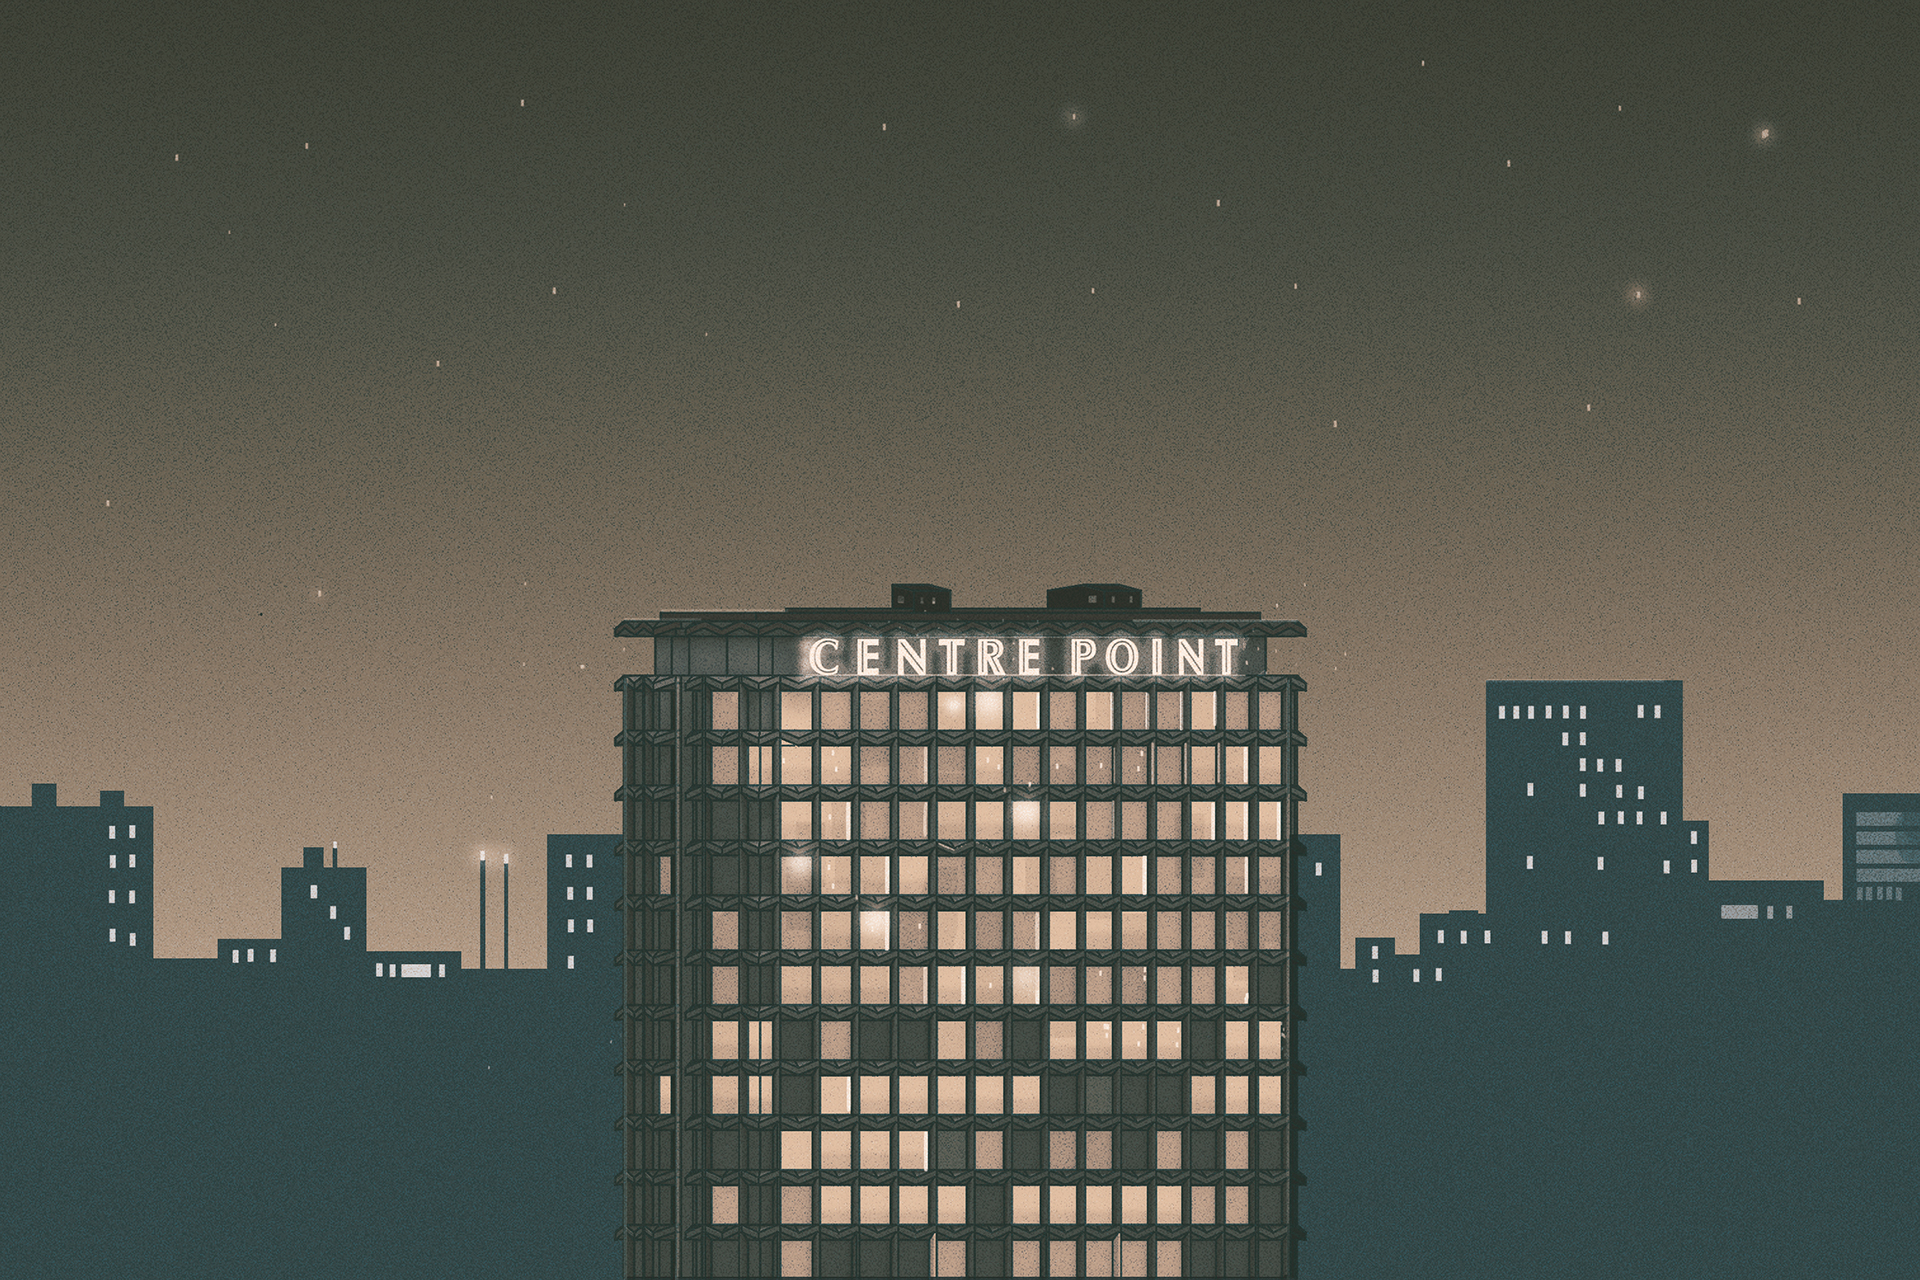 Wired x Almacantar_The Centre Point Sign.jpg